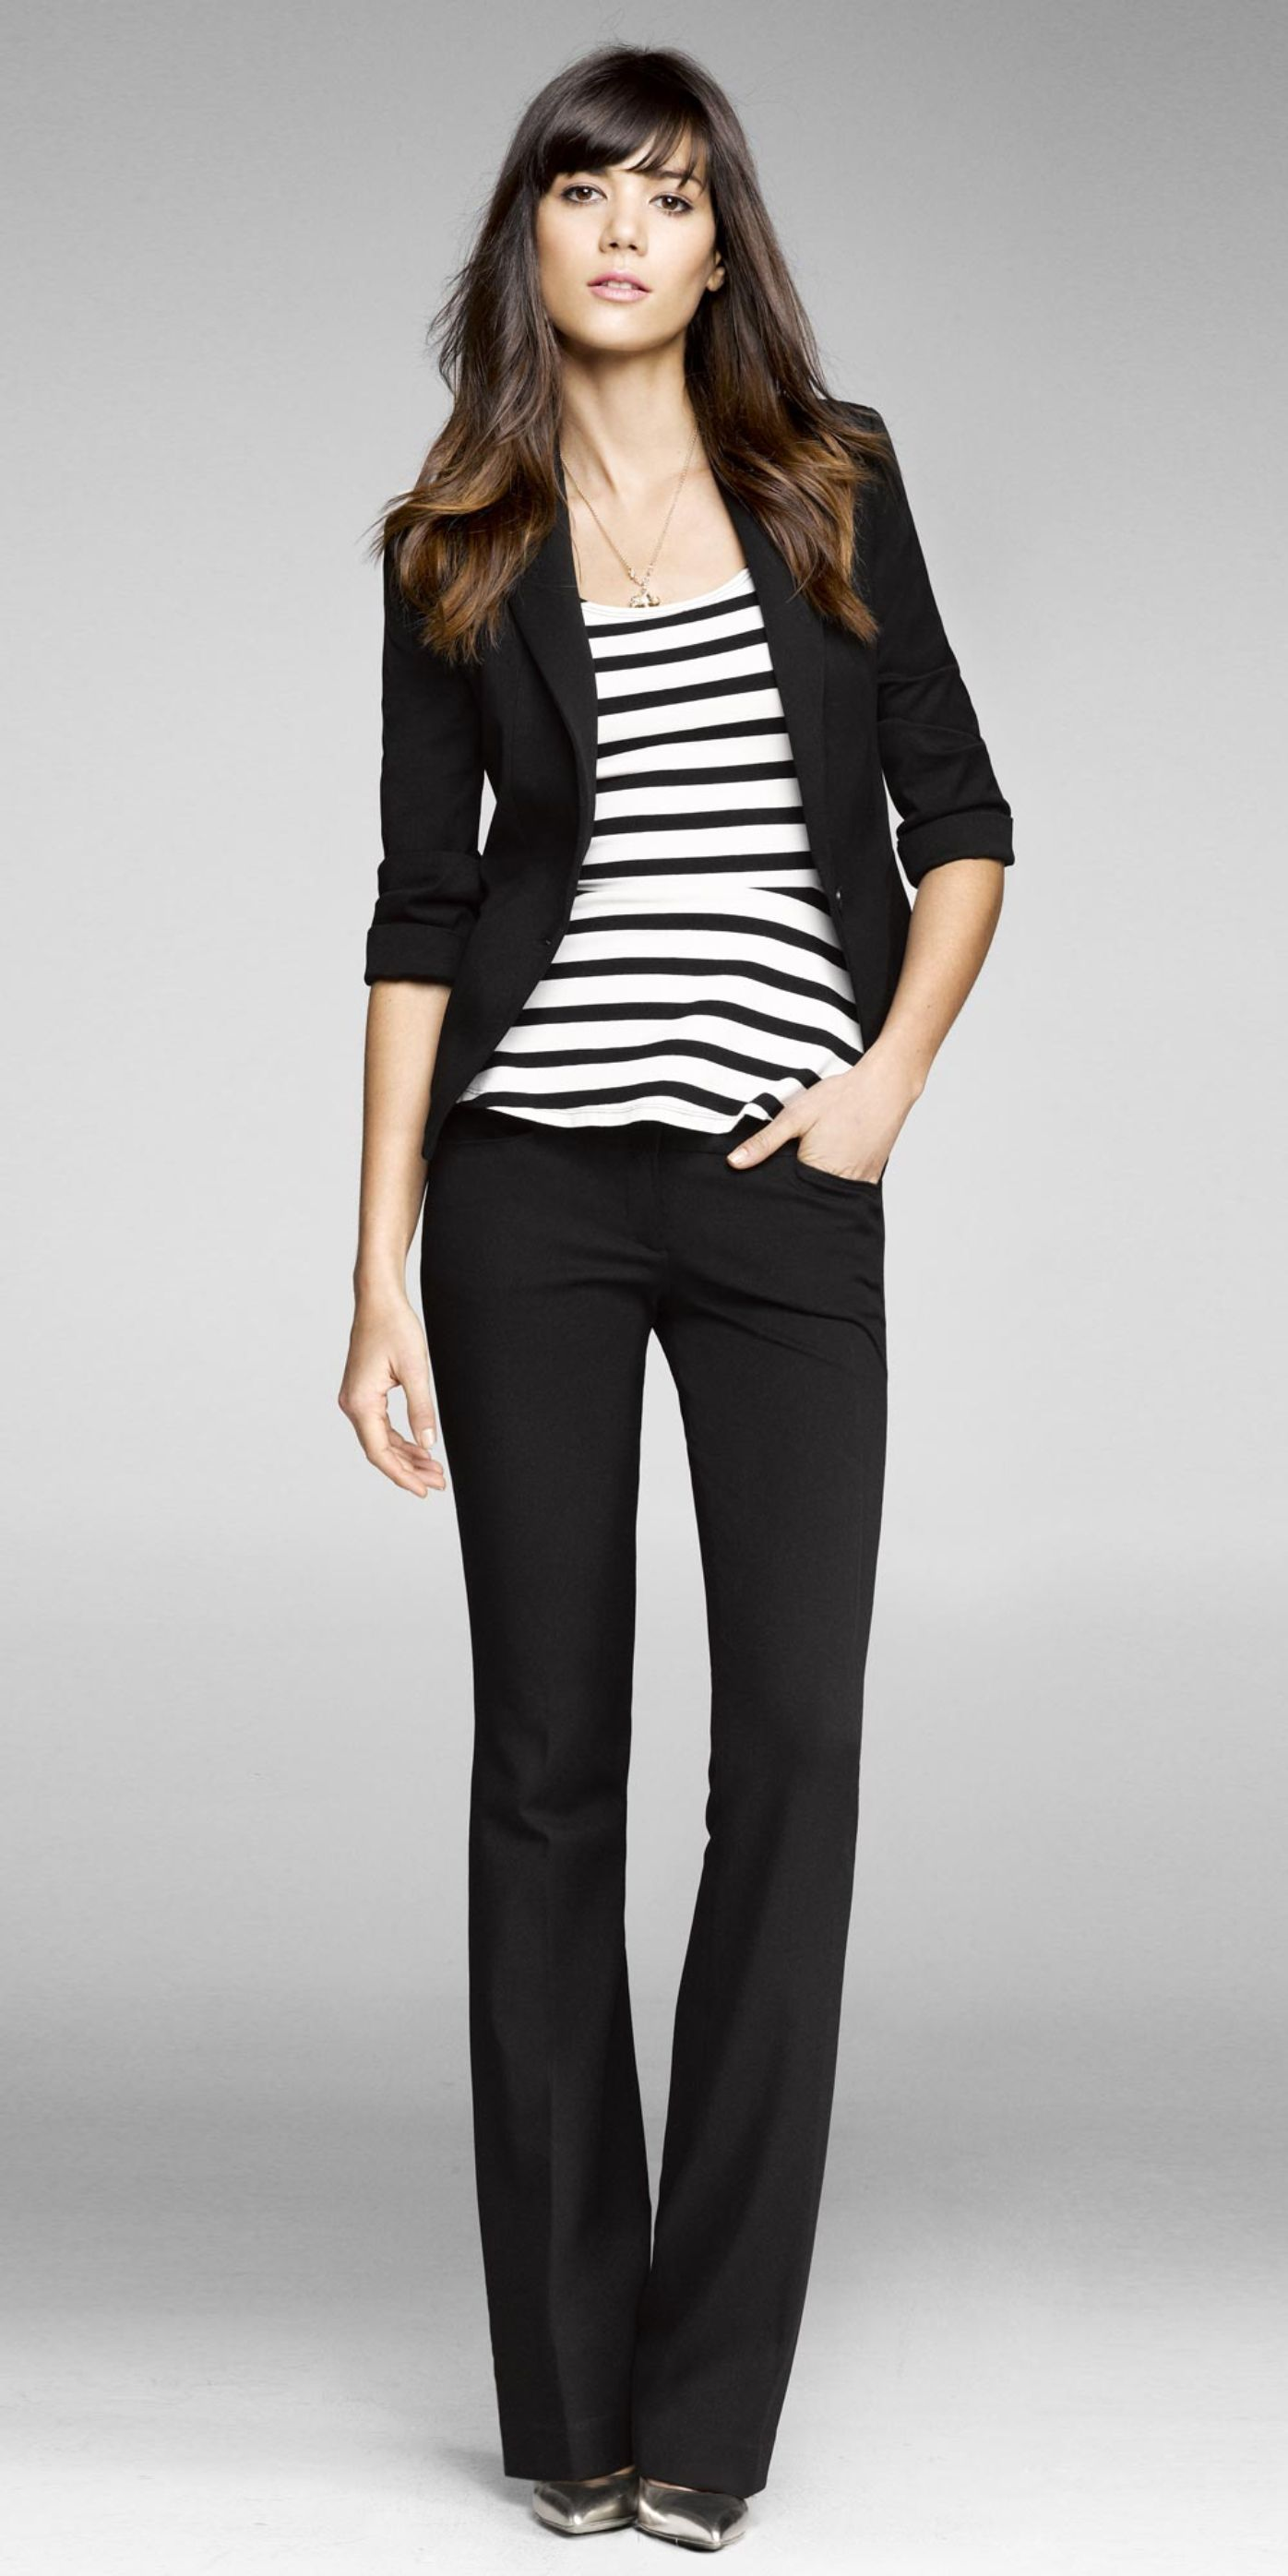 Black slacks, black blazer and striped top | Hair ...